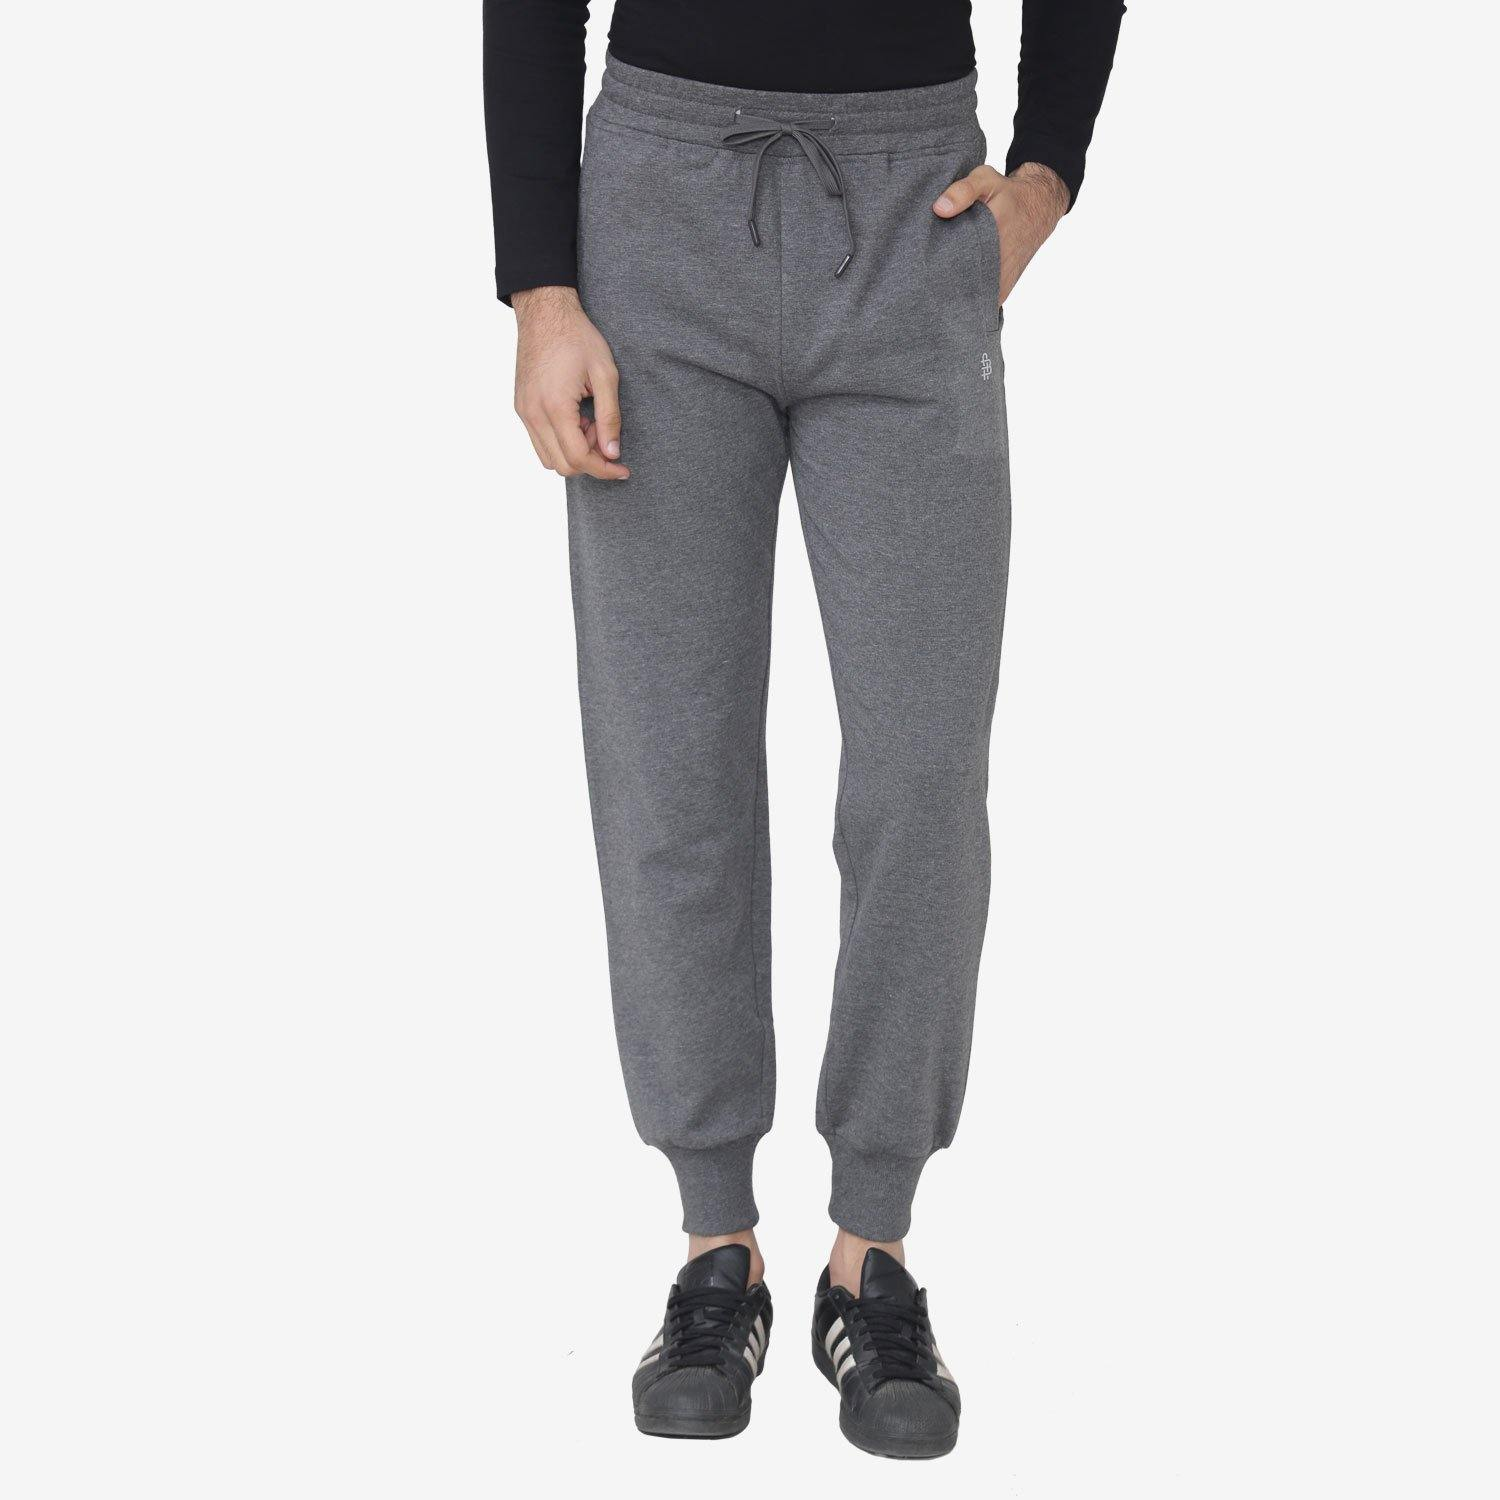 Joggers Pants For Winter